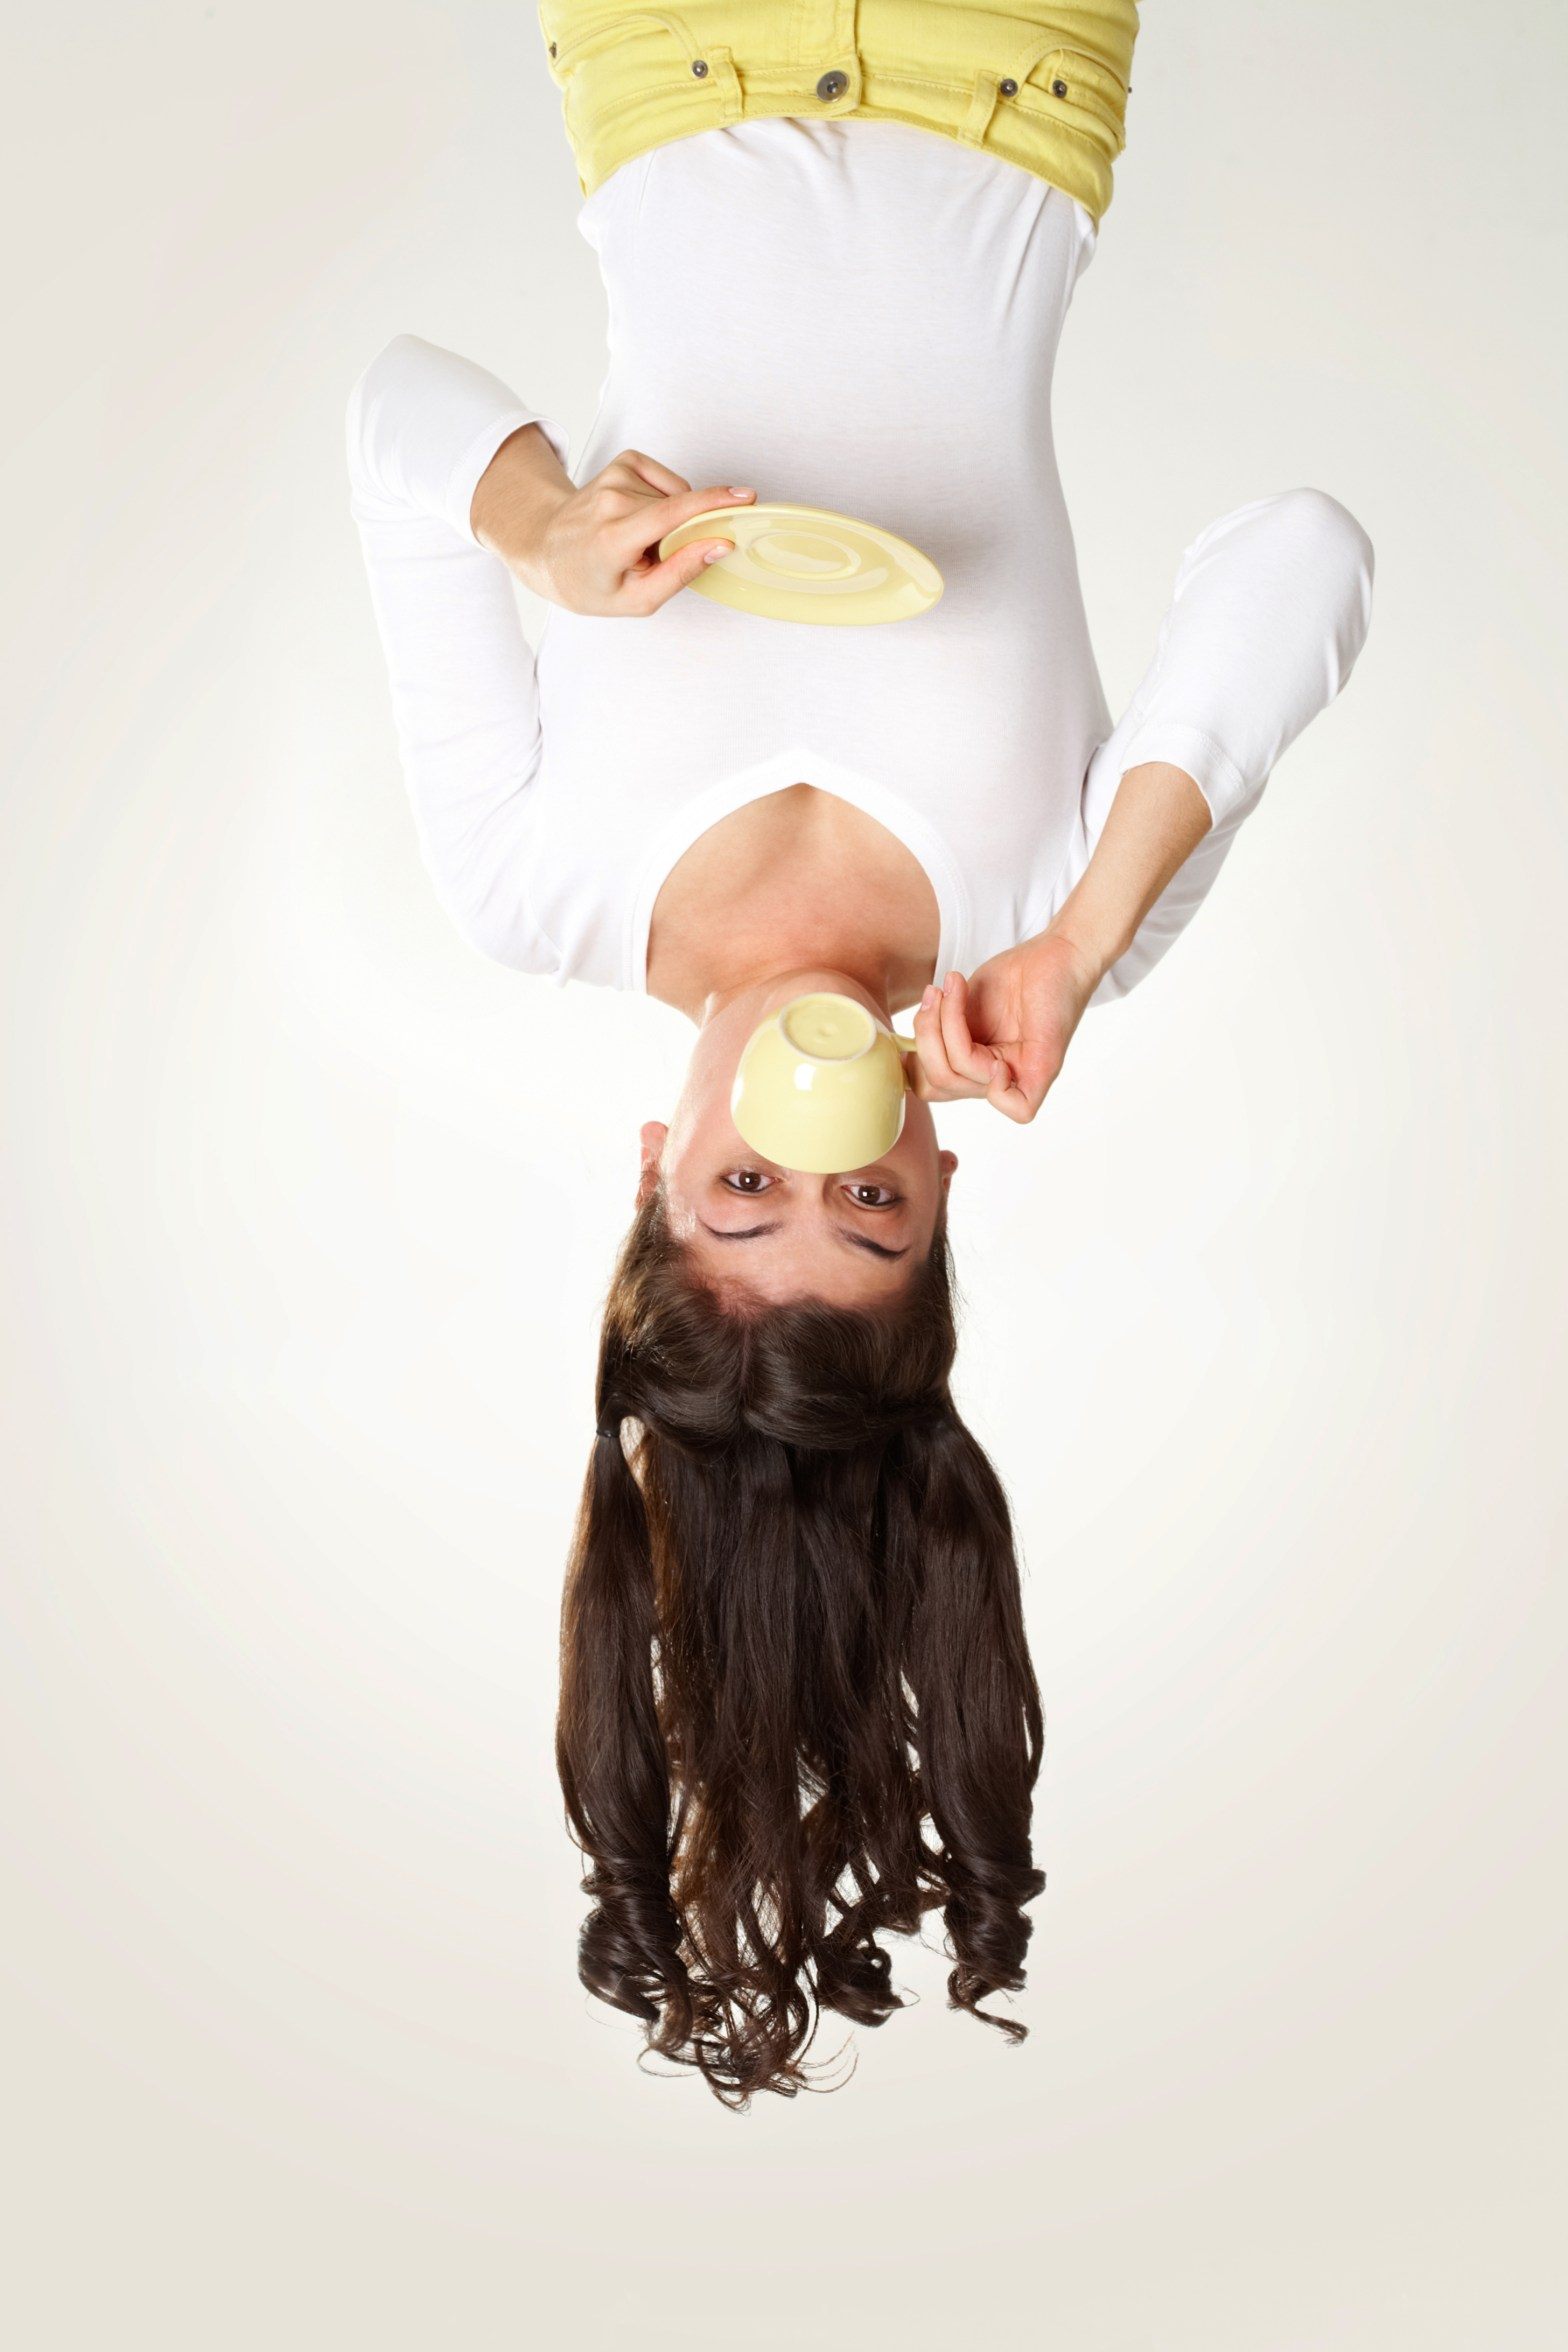 Woman hanging upside down and driking from a cup to cure hiccups